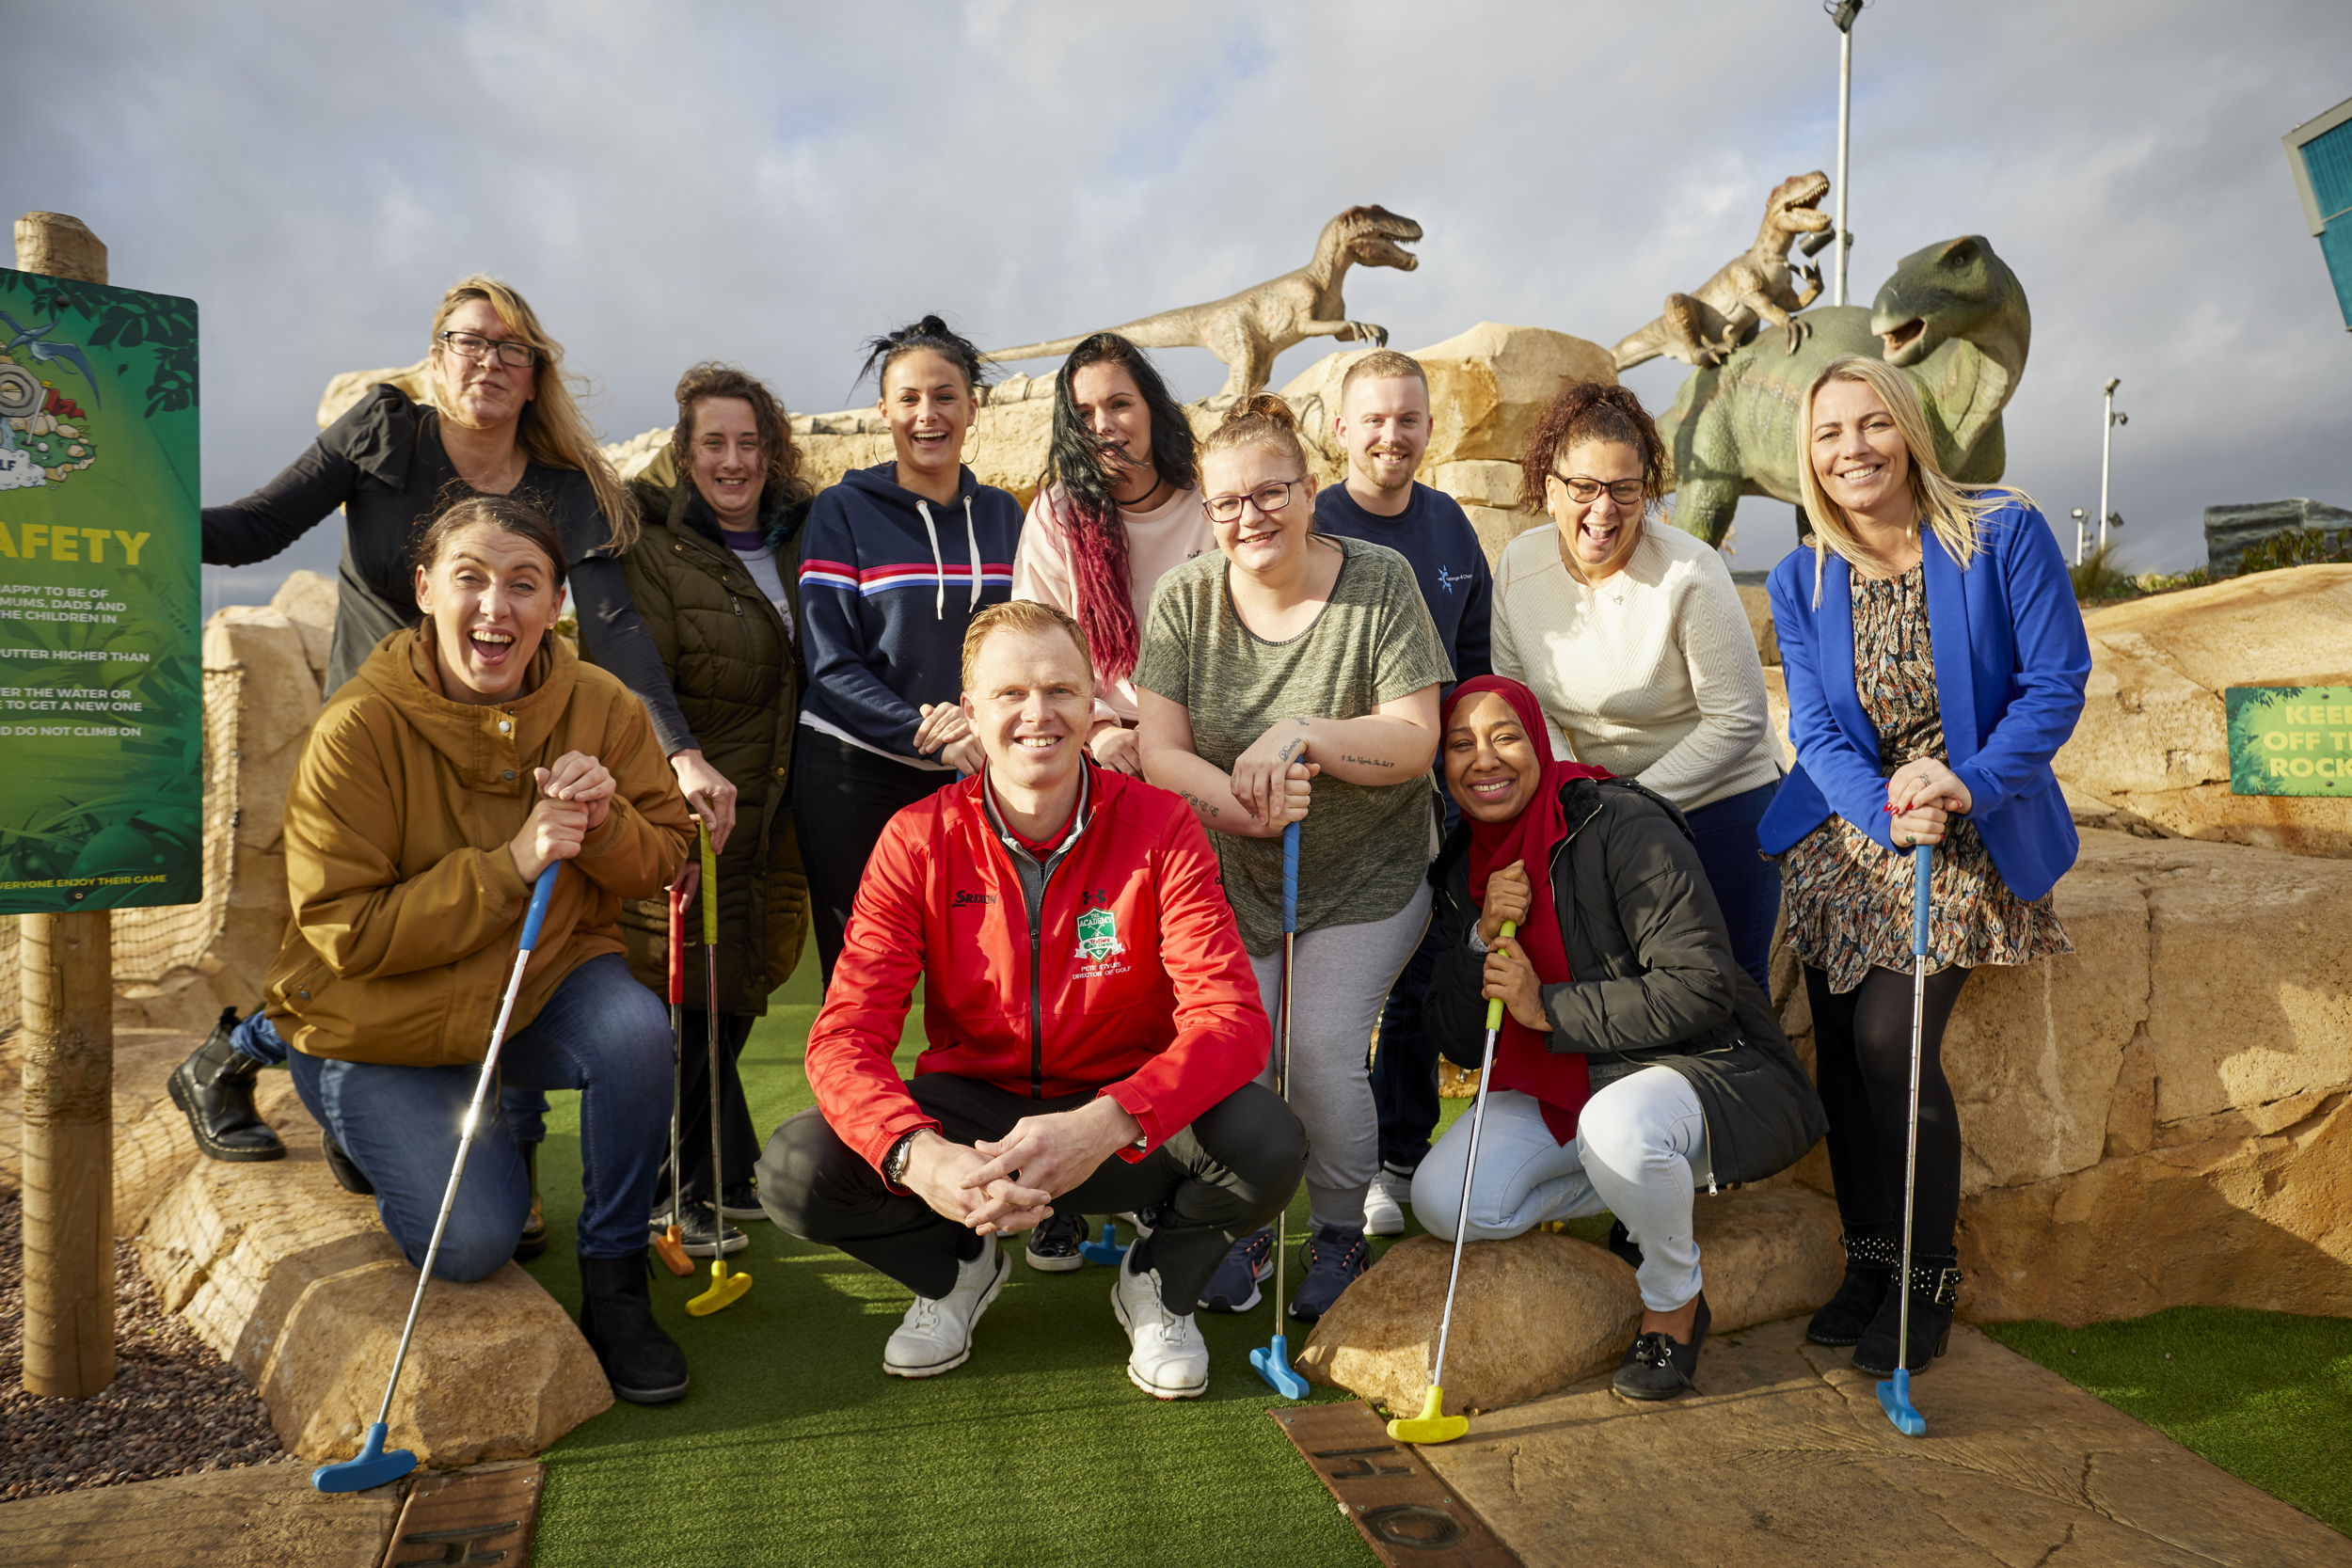 Community representatives join Pete Styles, director of golf, at Dino Falls and Trafford Golf Centre for a celebration of Dino Falls first birthday.